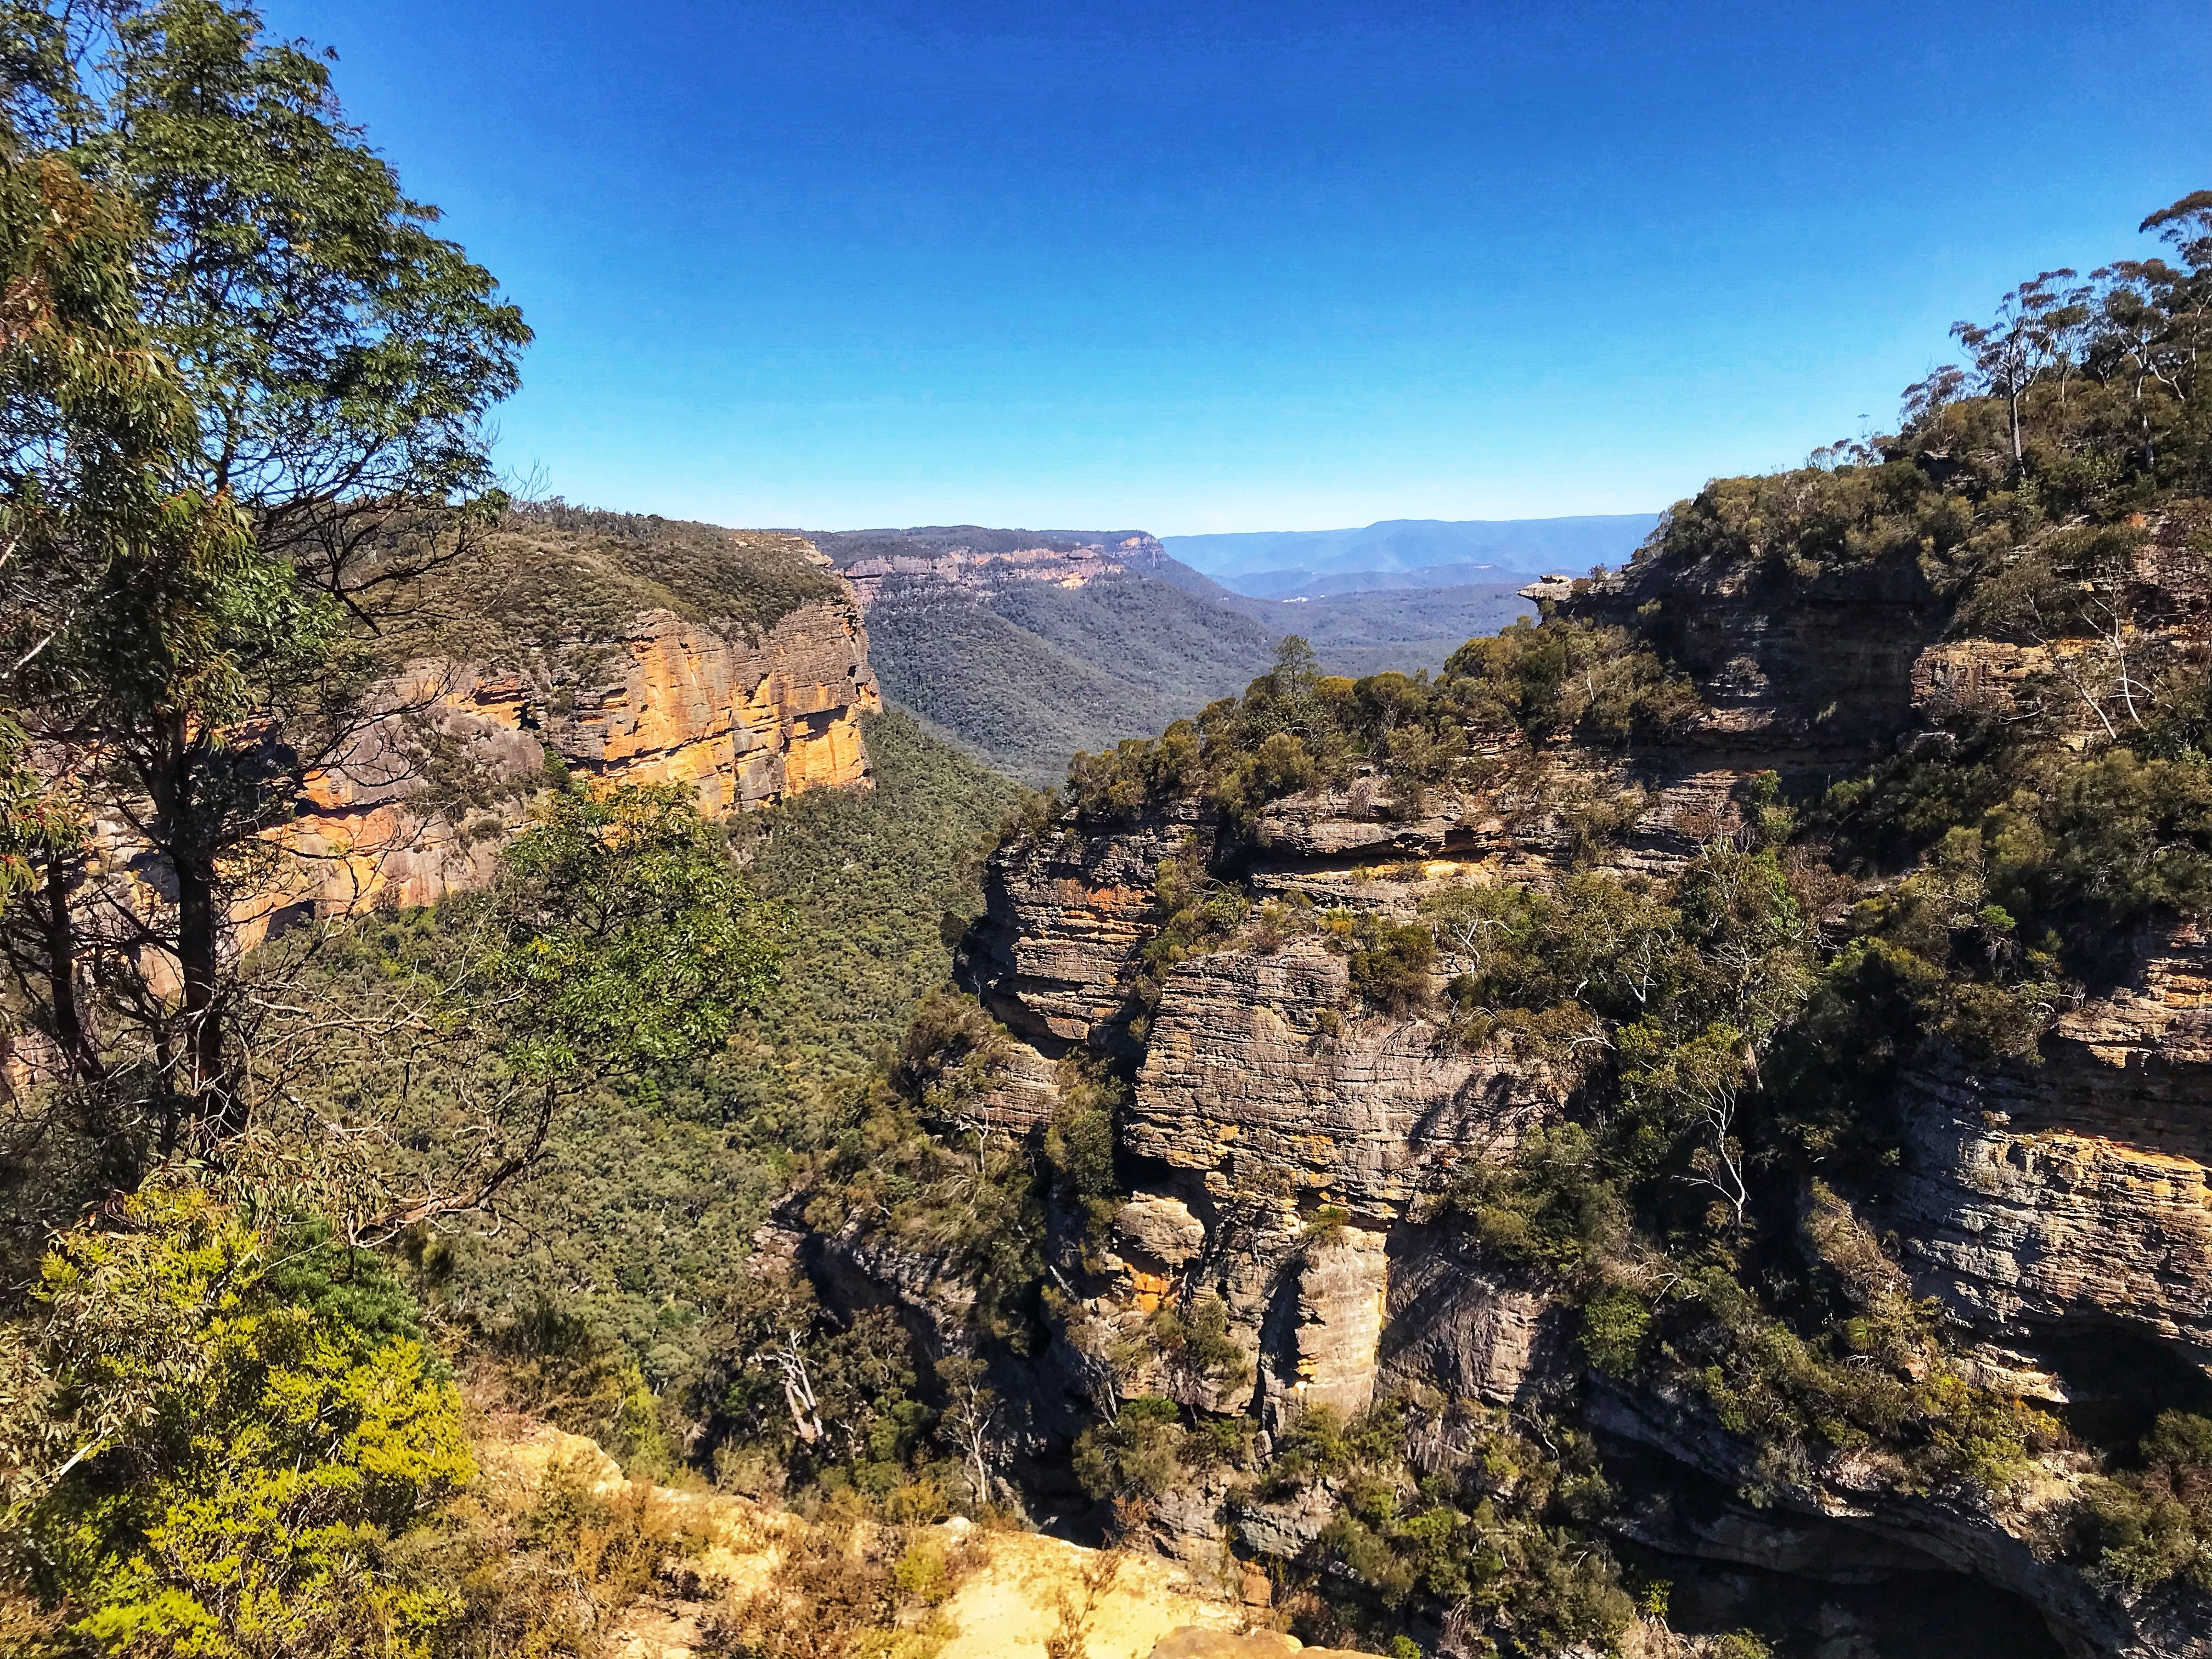 Therabulat Lookout and Norths Lookout